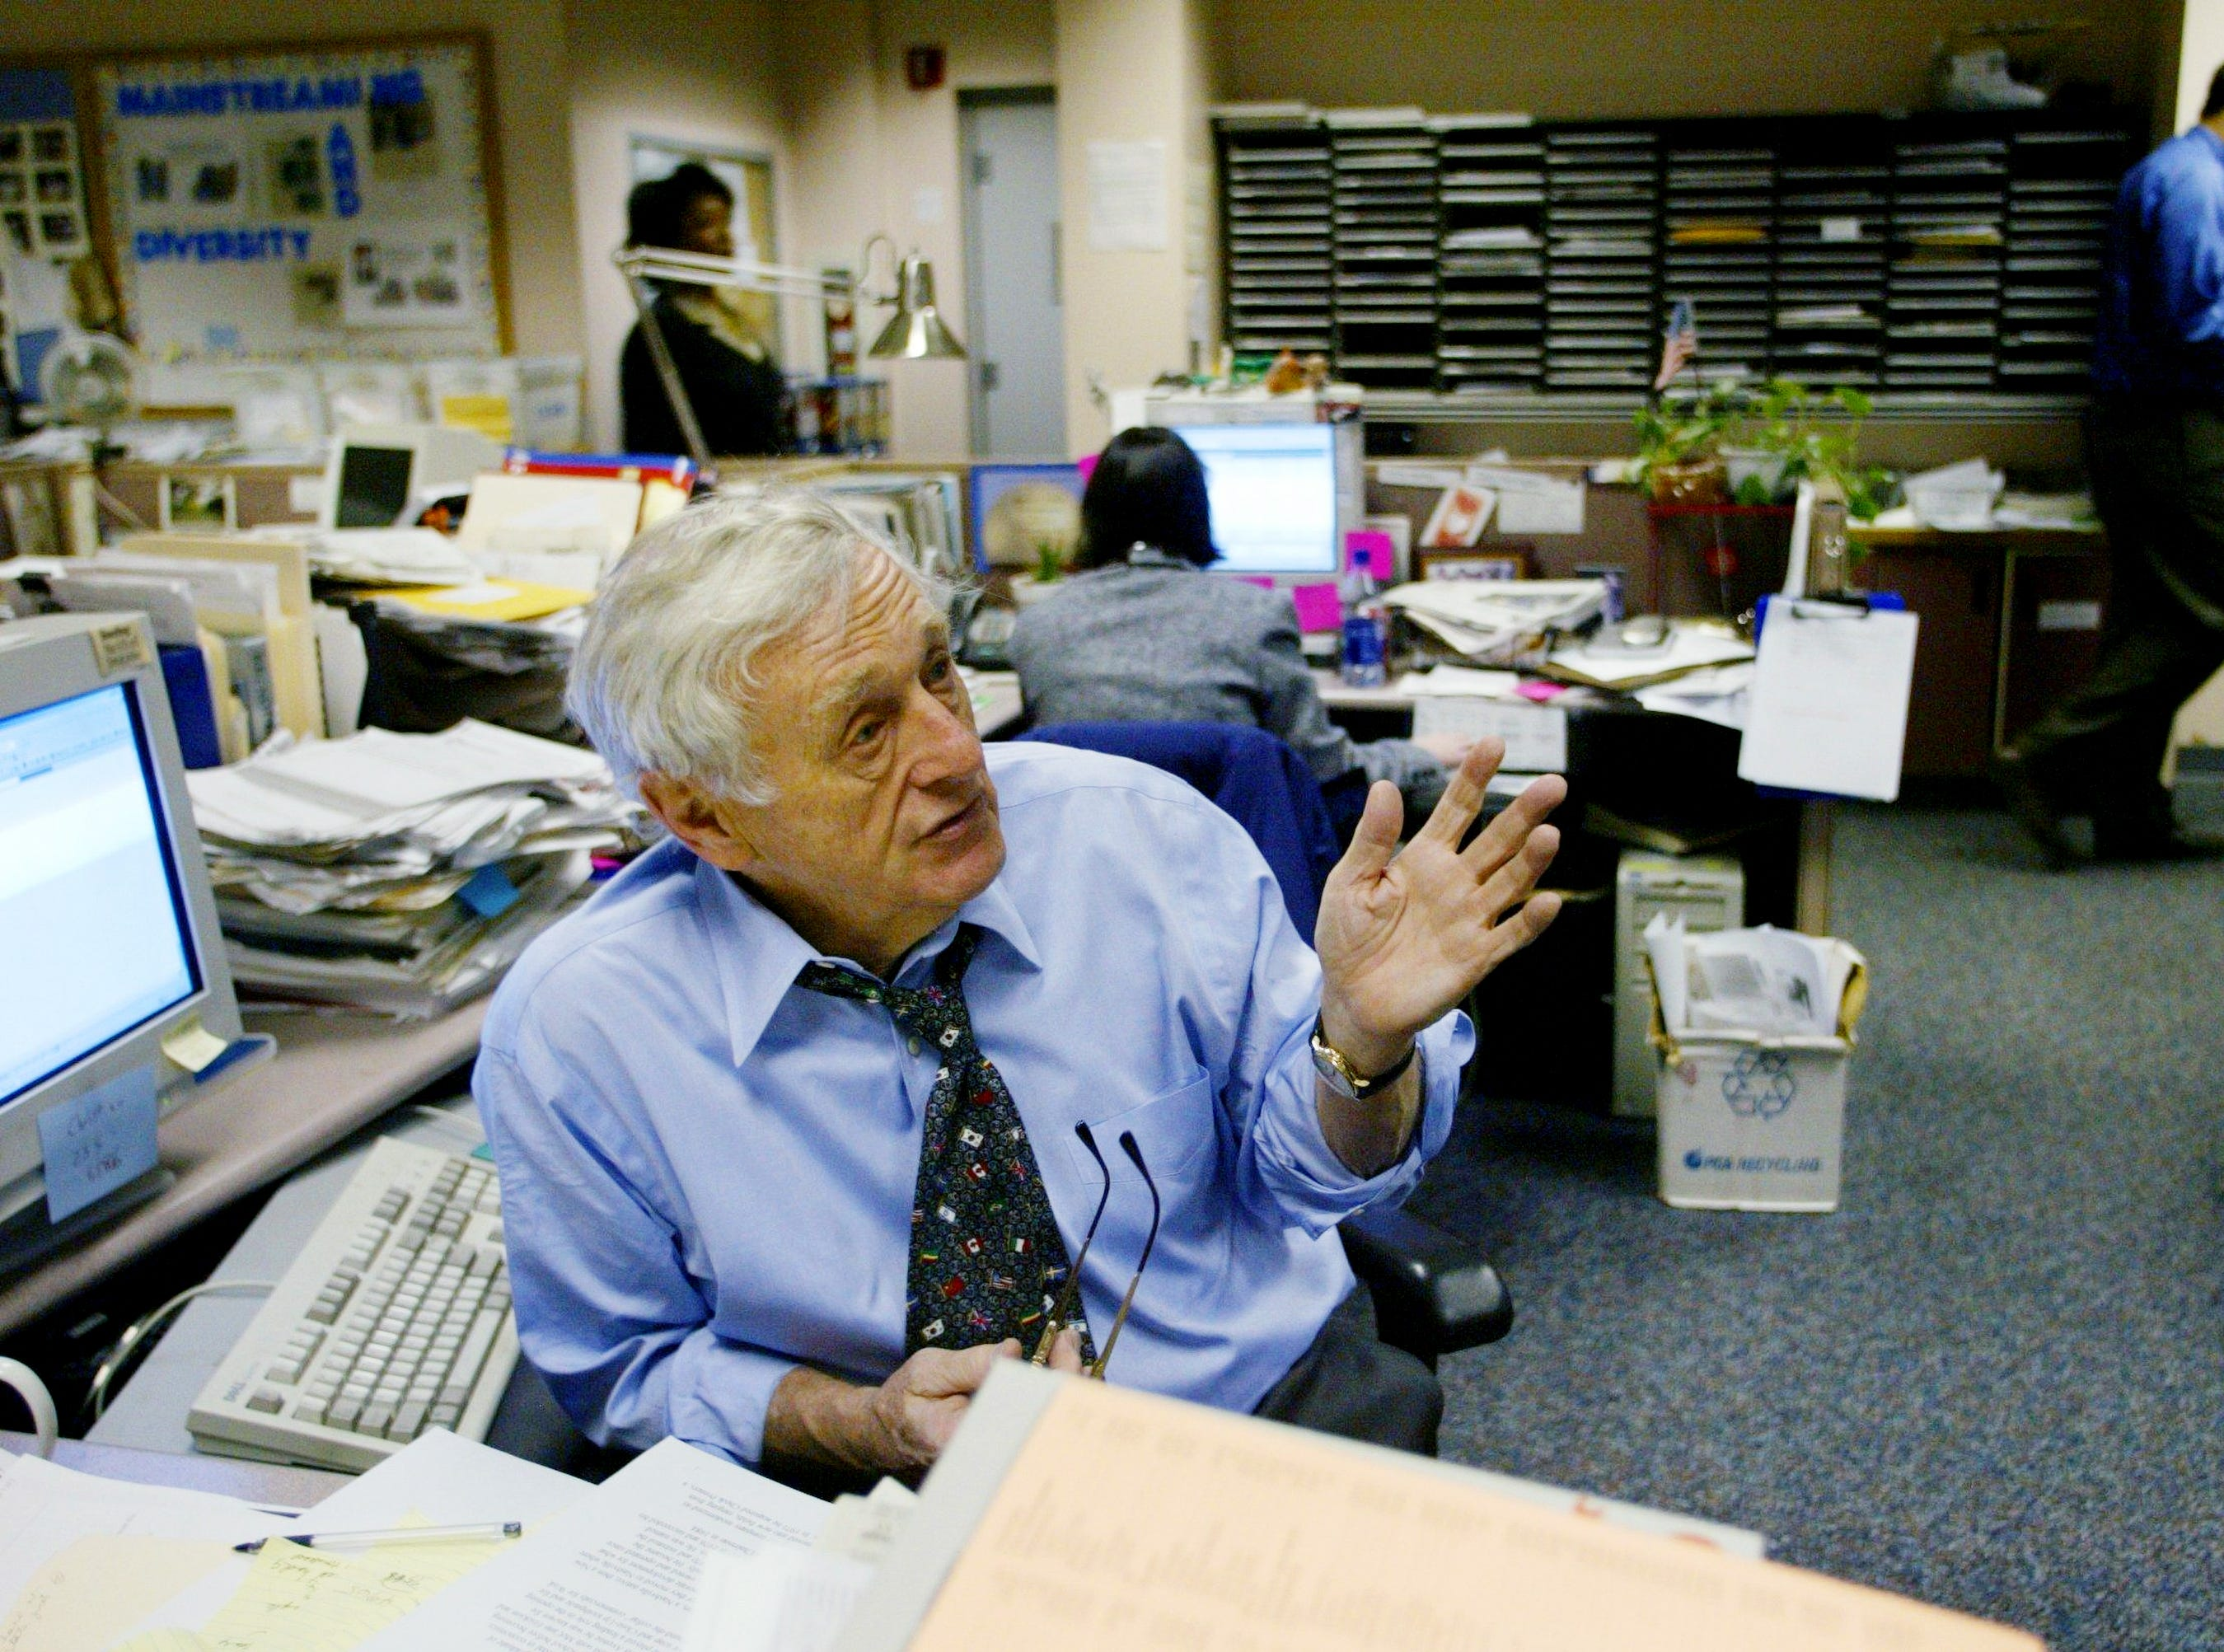 Former Tennessean editor and publisher John Seigenthaler works in the newsroom Jan. 28, 2003.